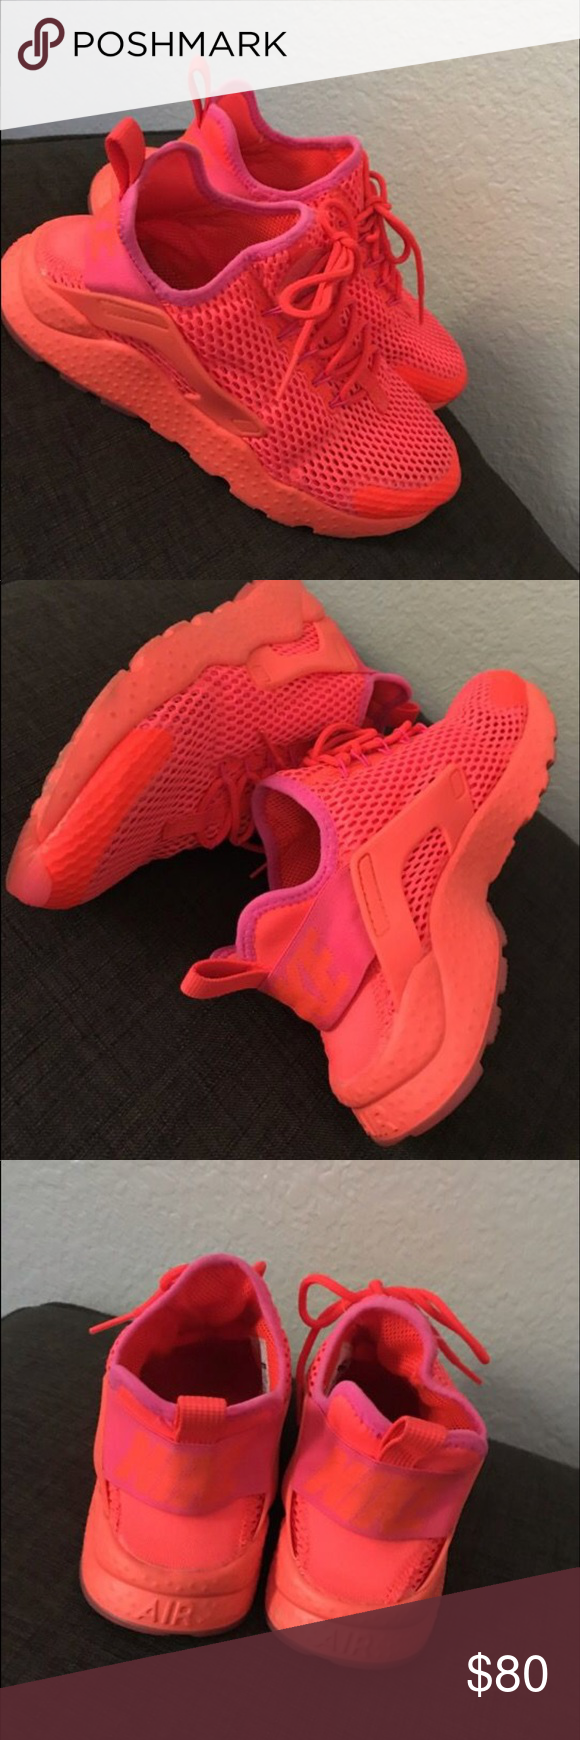 d03d2dadb894 Nike Huaraches Bright Pink Brand new only worn a few times Nike Shoes  Sneakers